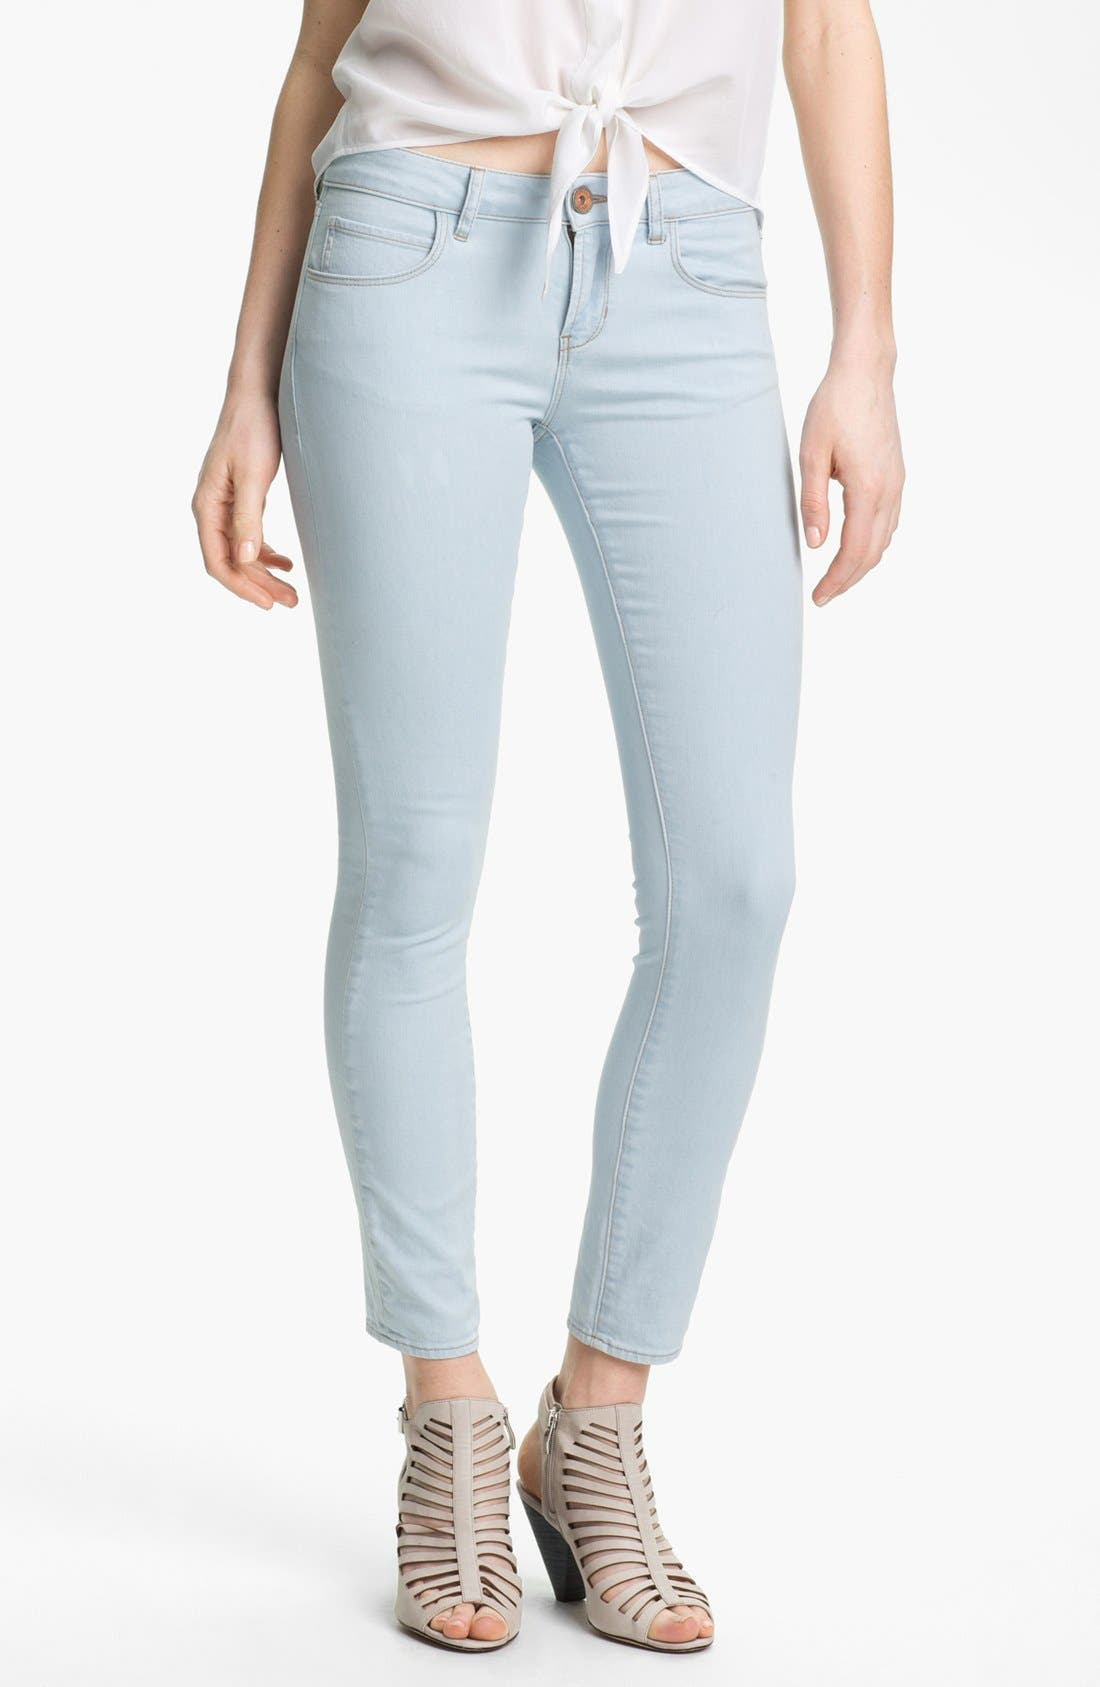 Alternate Image 1 Selected - Two by Vince Camuto Skinny Jeans (Pale Blue)